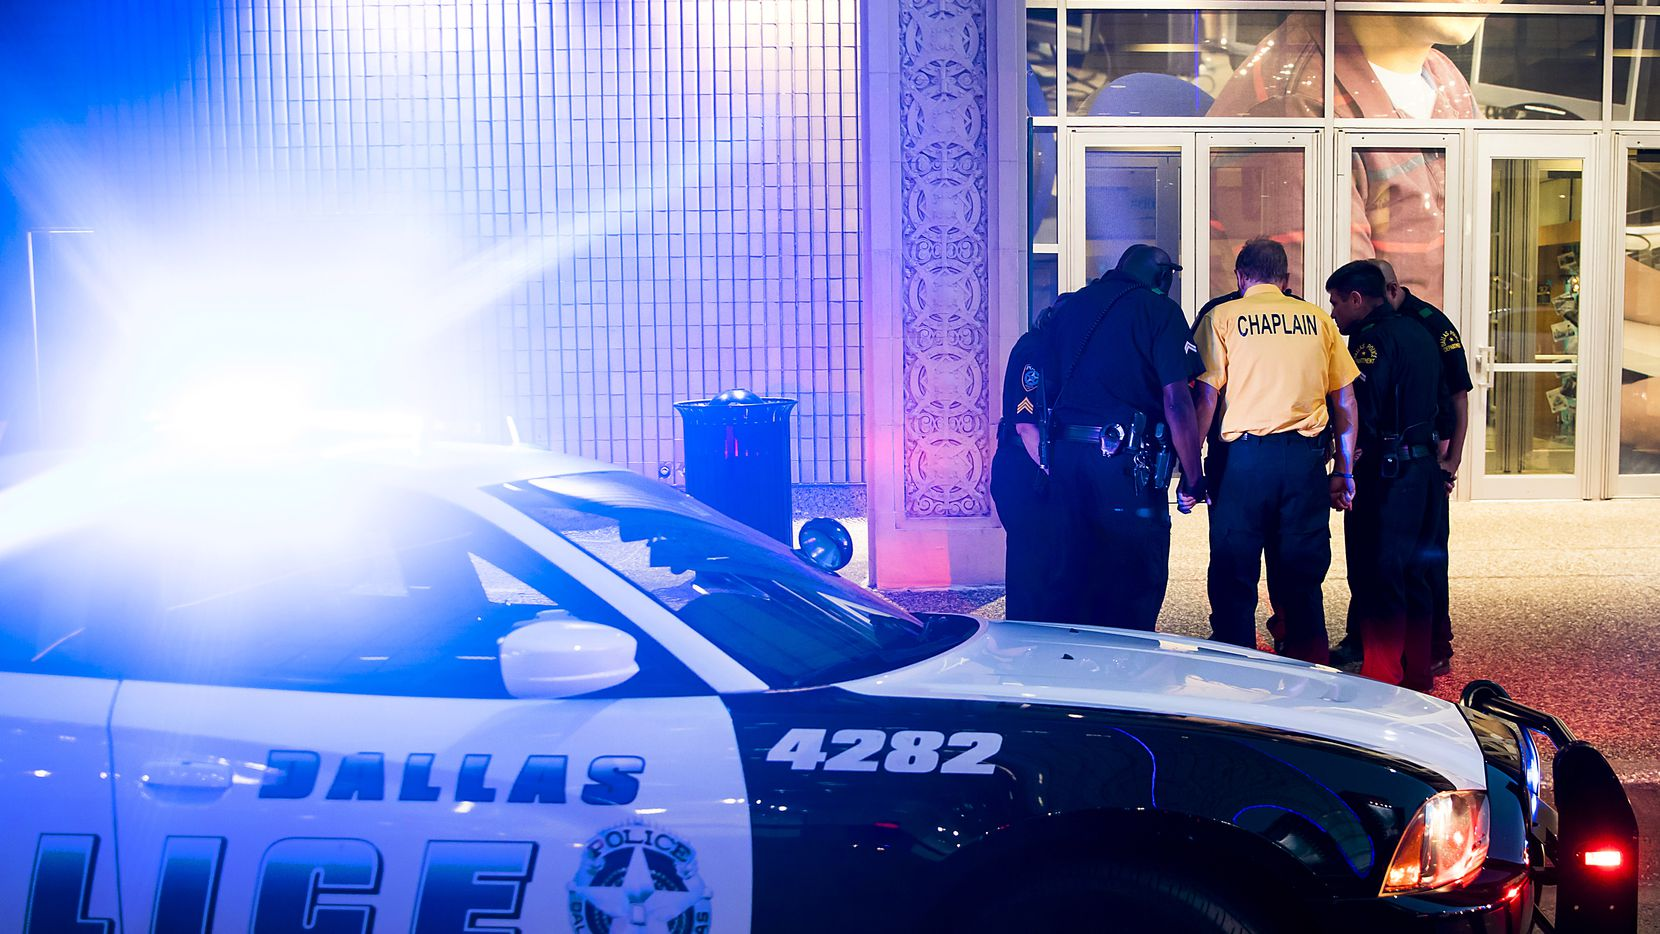 At 8:53 p.m., five minutes before the shooting began exactly one year earlier, Dallas police officers joined Dallas County Community College District police in prayer on July 7, 2017, in front of the Lamar Street entrance to El Centro College.